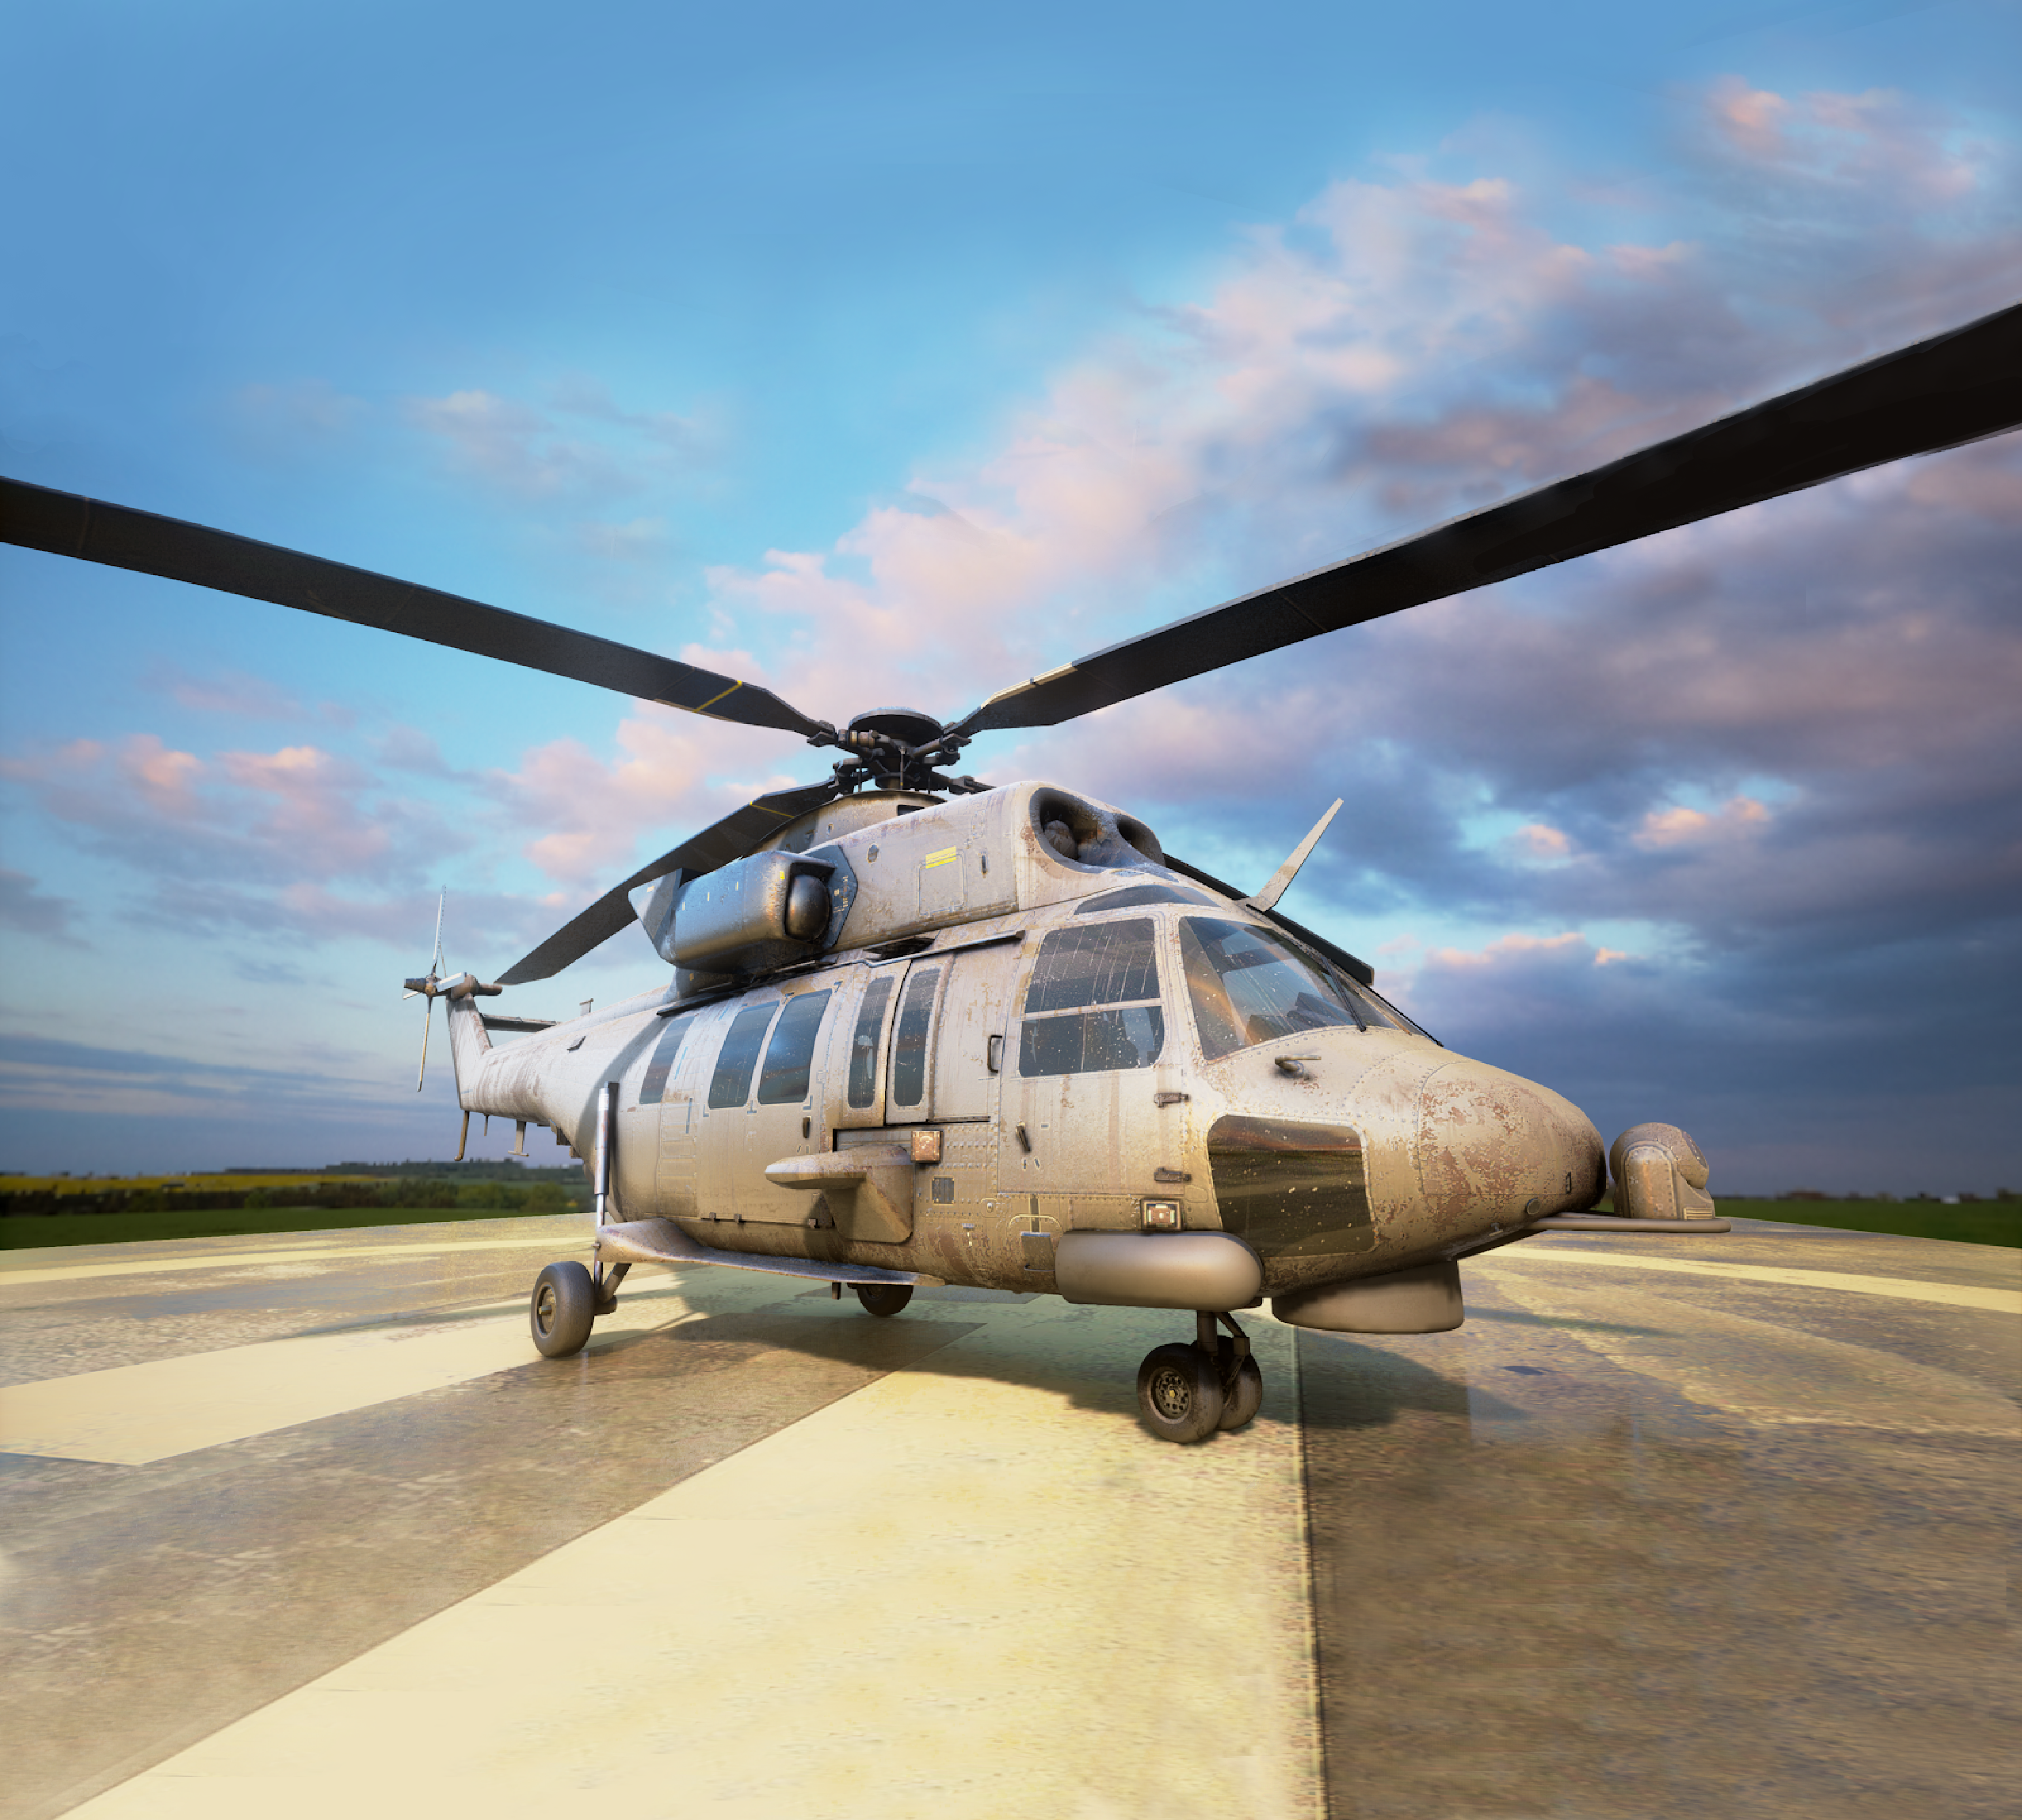 A Simthetiq 3D model of a helicopter on a landing pad